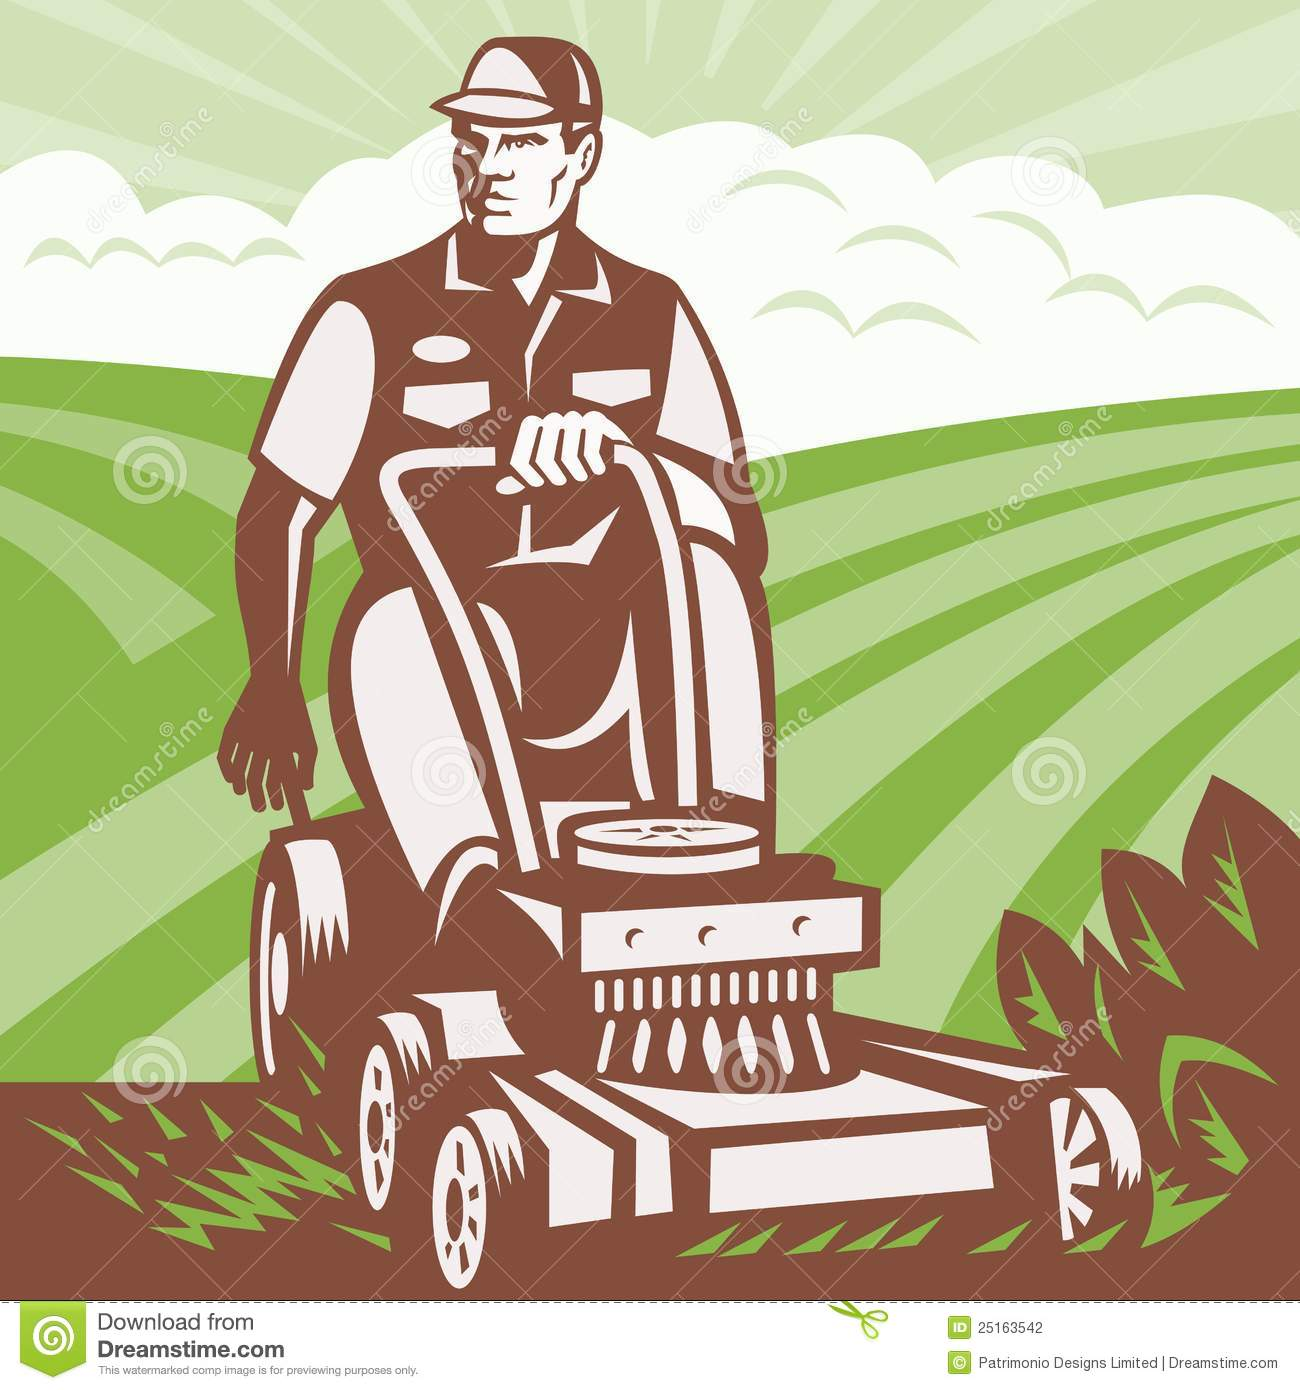 Gardener landscaper riding lawn mower retro stock vector for Paysagiste logo